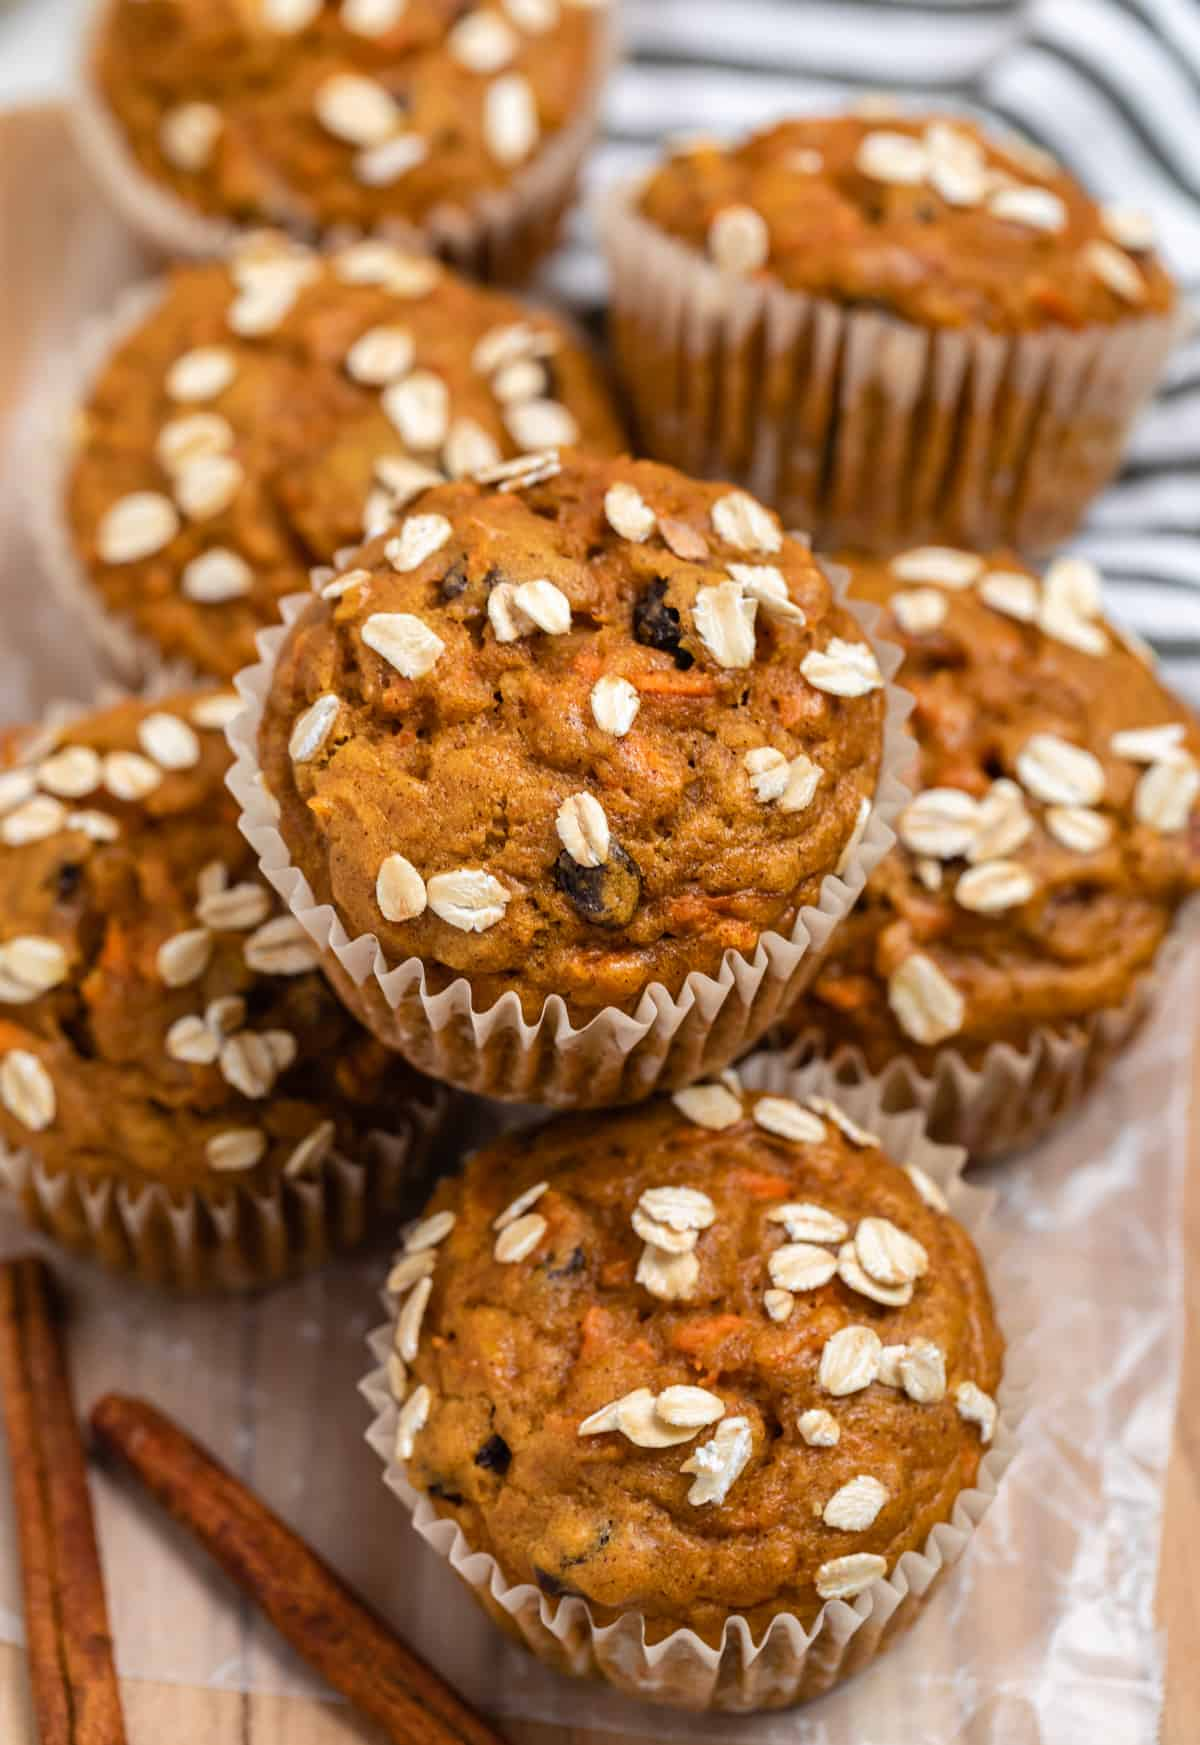 Pumpkin muffins with carrots and oats on top.